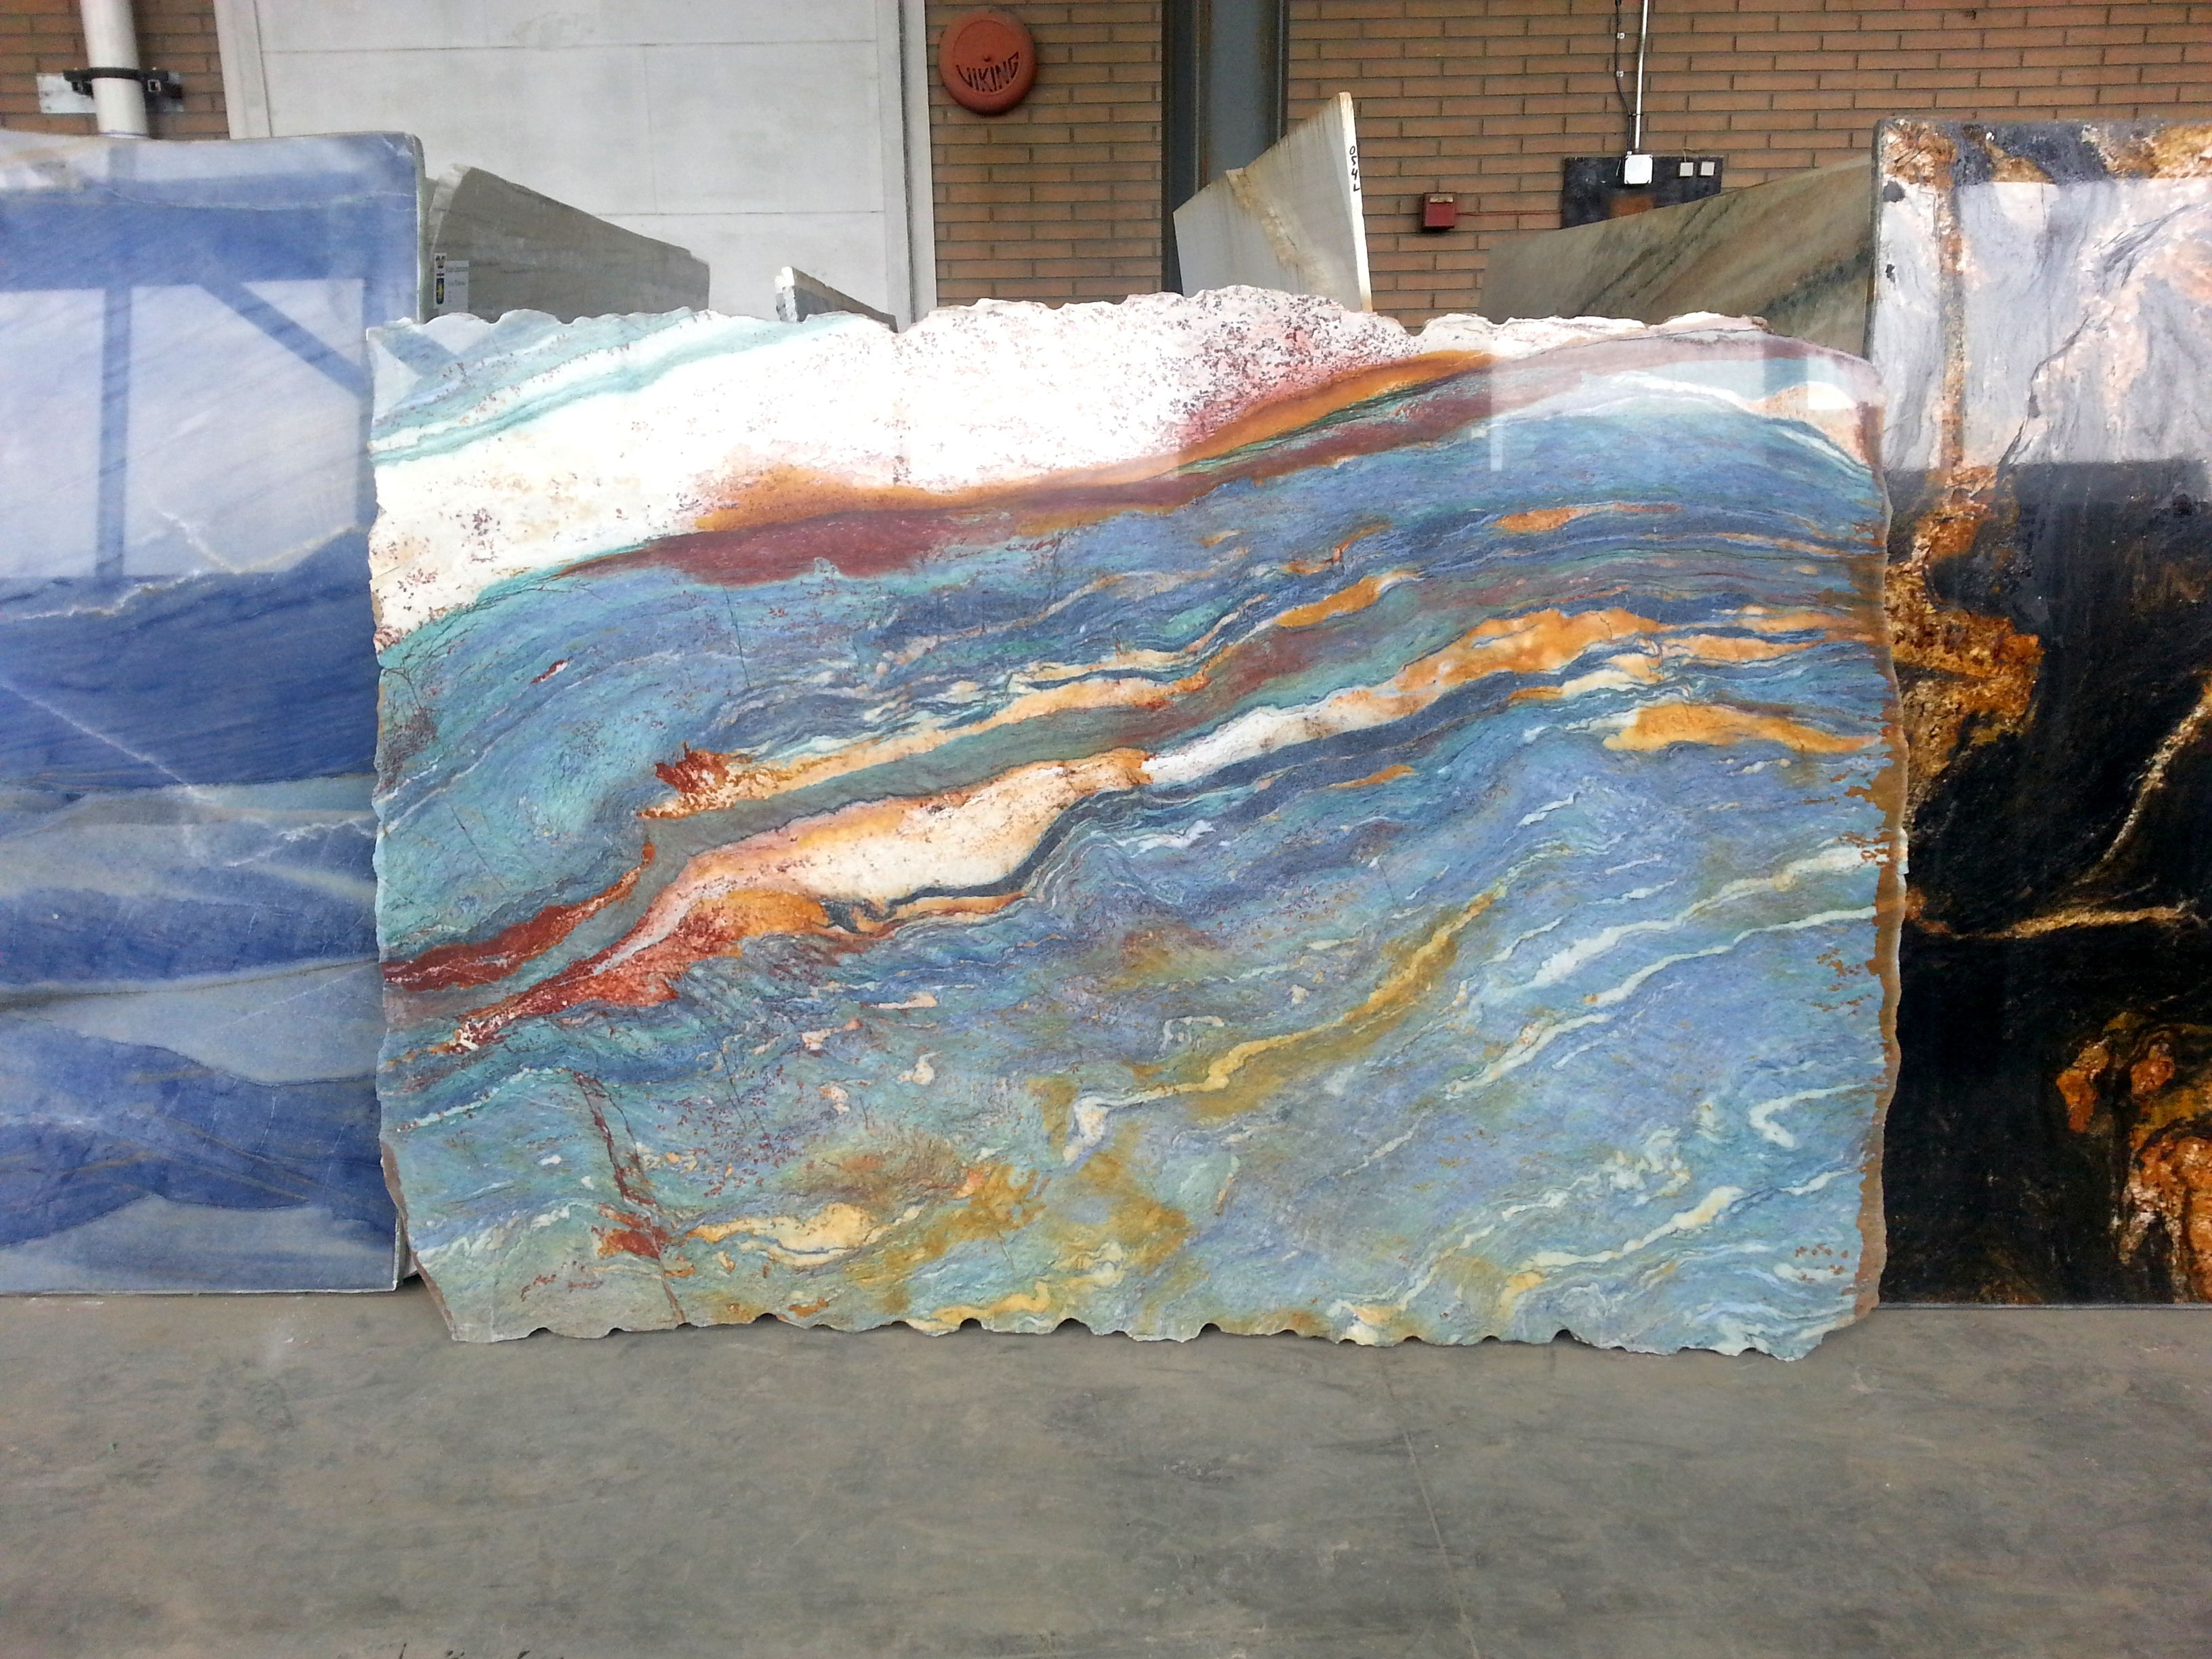 Van Gogh Granite Is One Of The Most Exclusive Natural